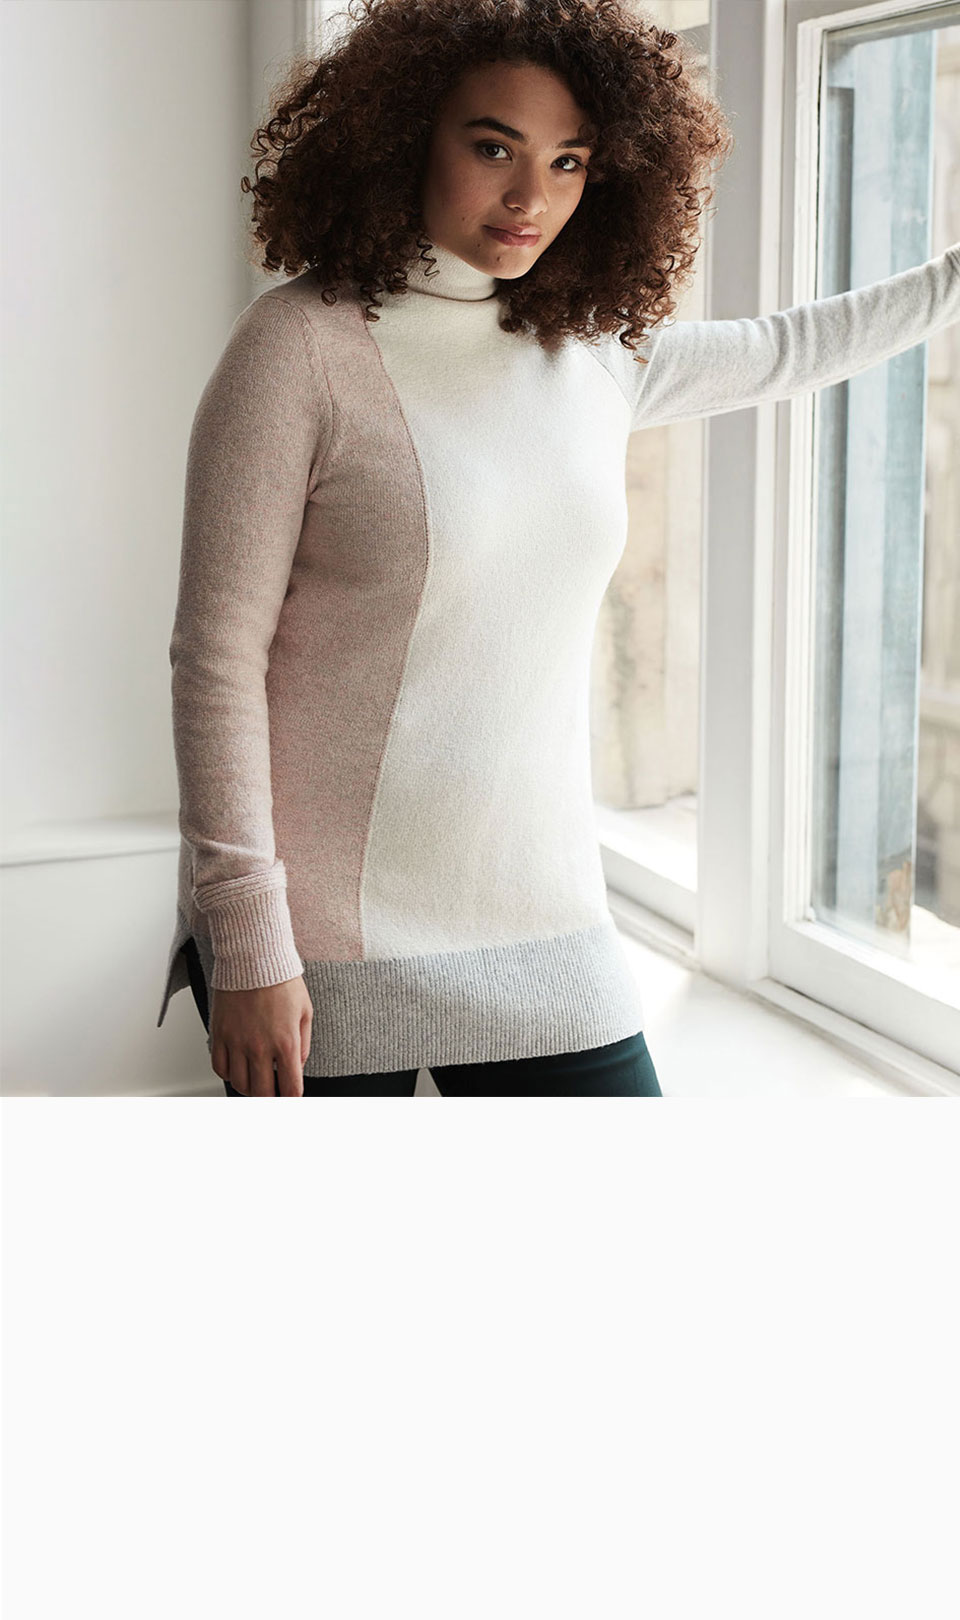 The tunic sweater